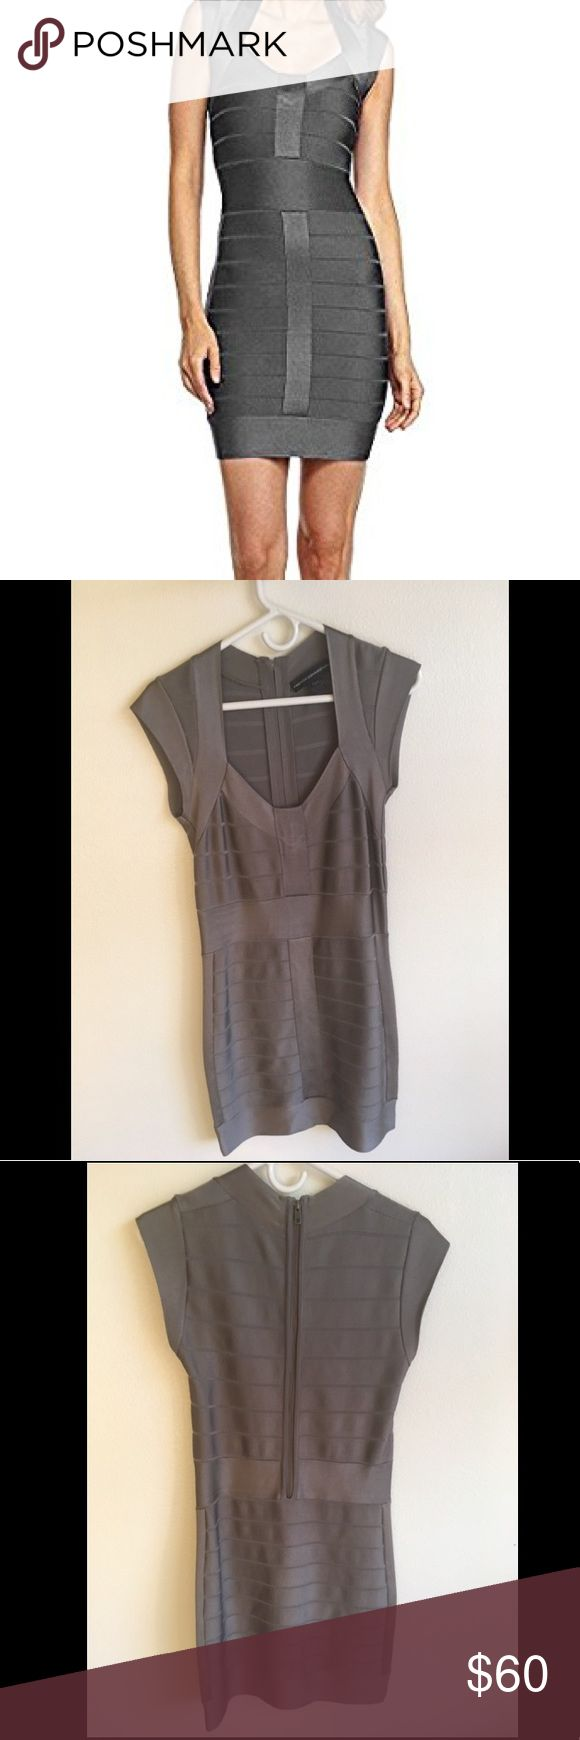 Gray Bandage Bodycon Cocktail Dress This dress is perfect for that special occasion or a night out with friends. It's fabric has a nice metallic type of reflectivness to add that extra pop to your outfit. This dress is lightly worn and in good condition. French Connection Dresses